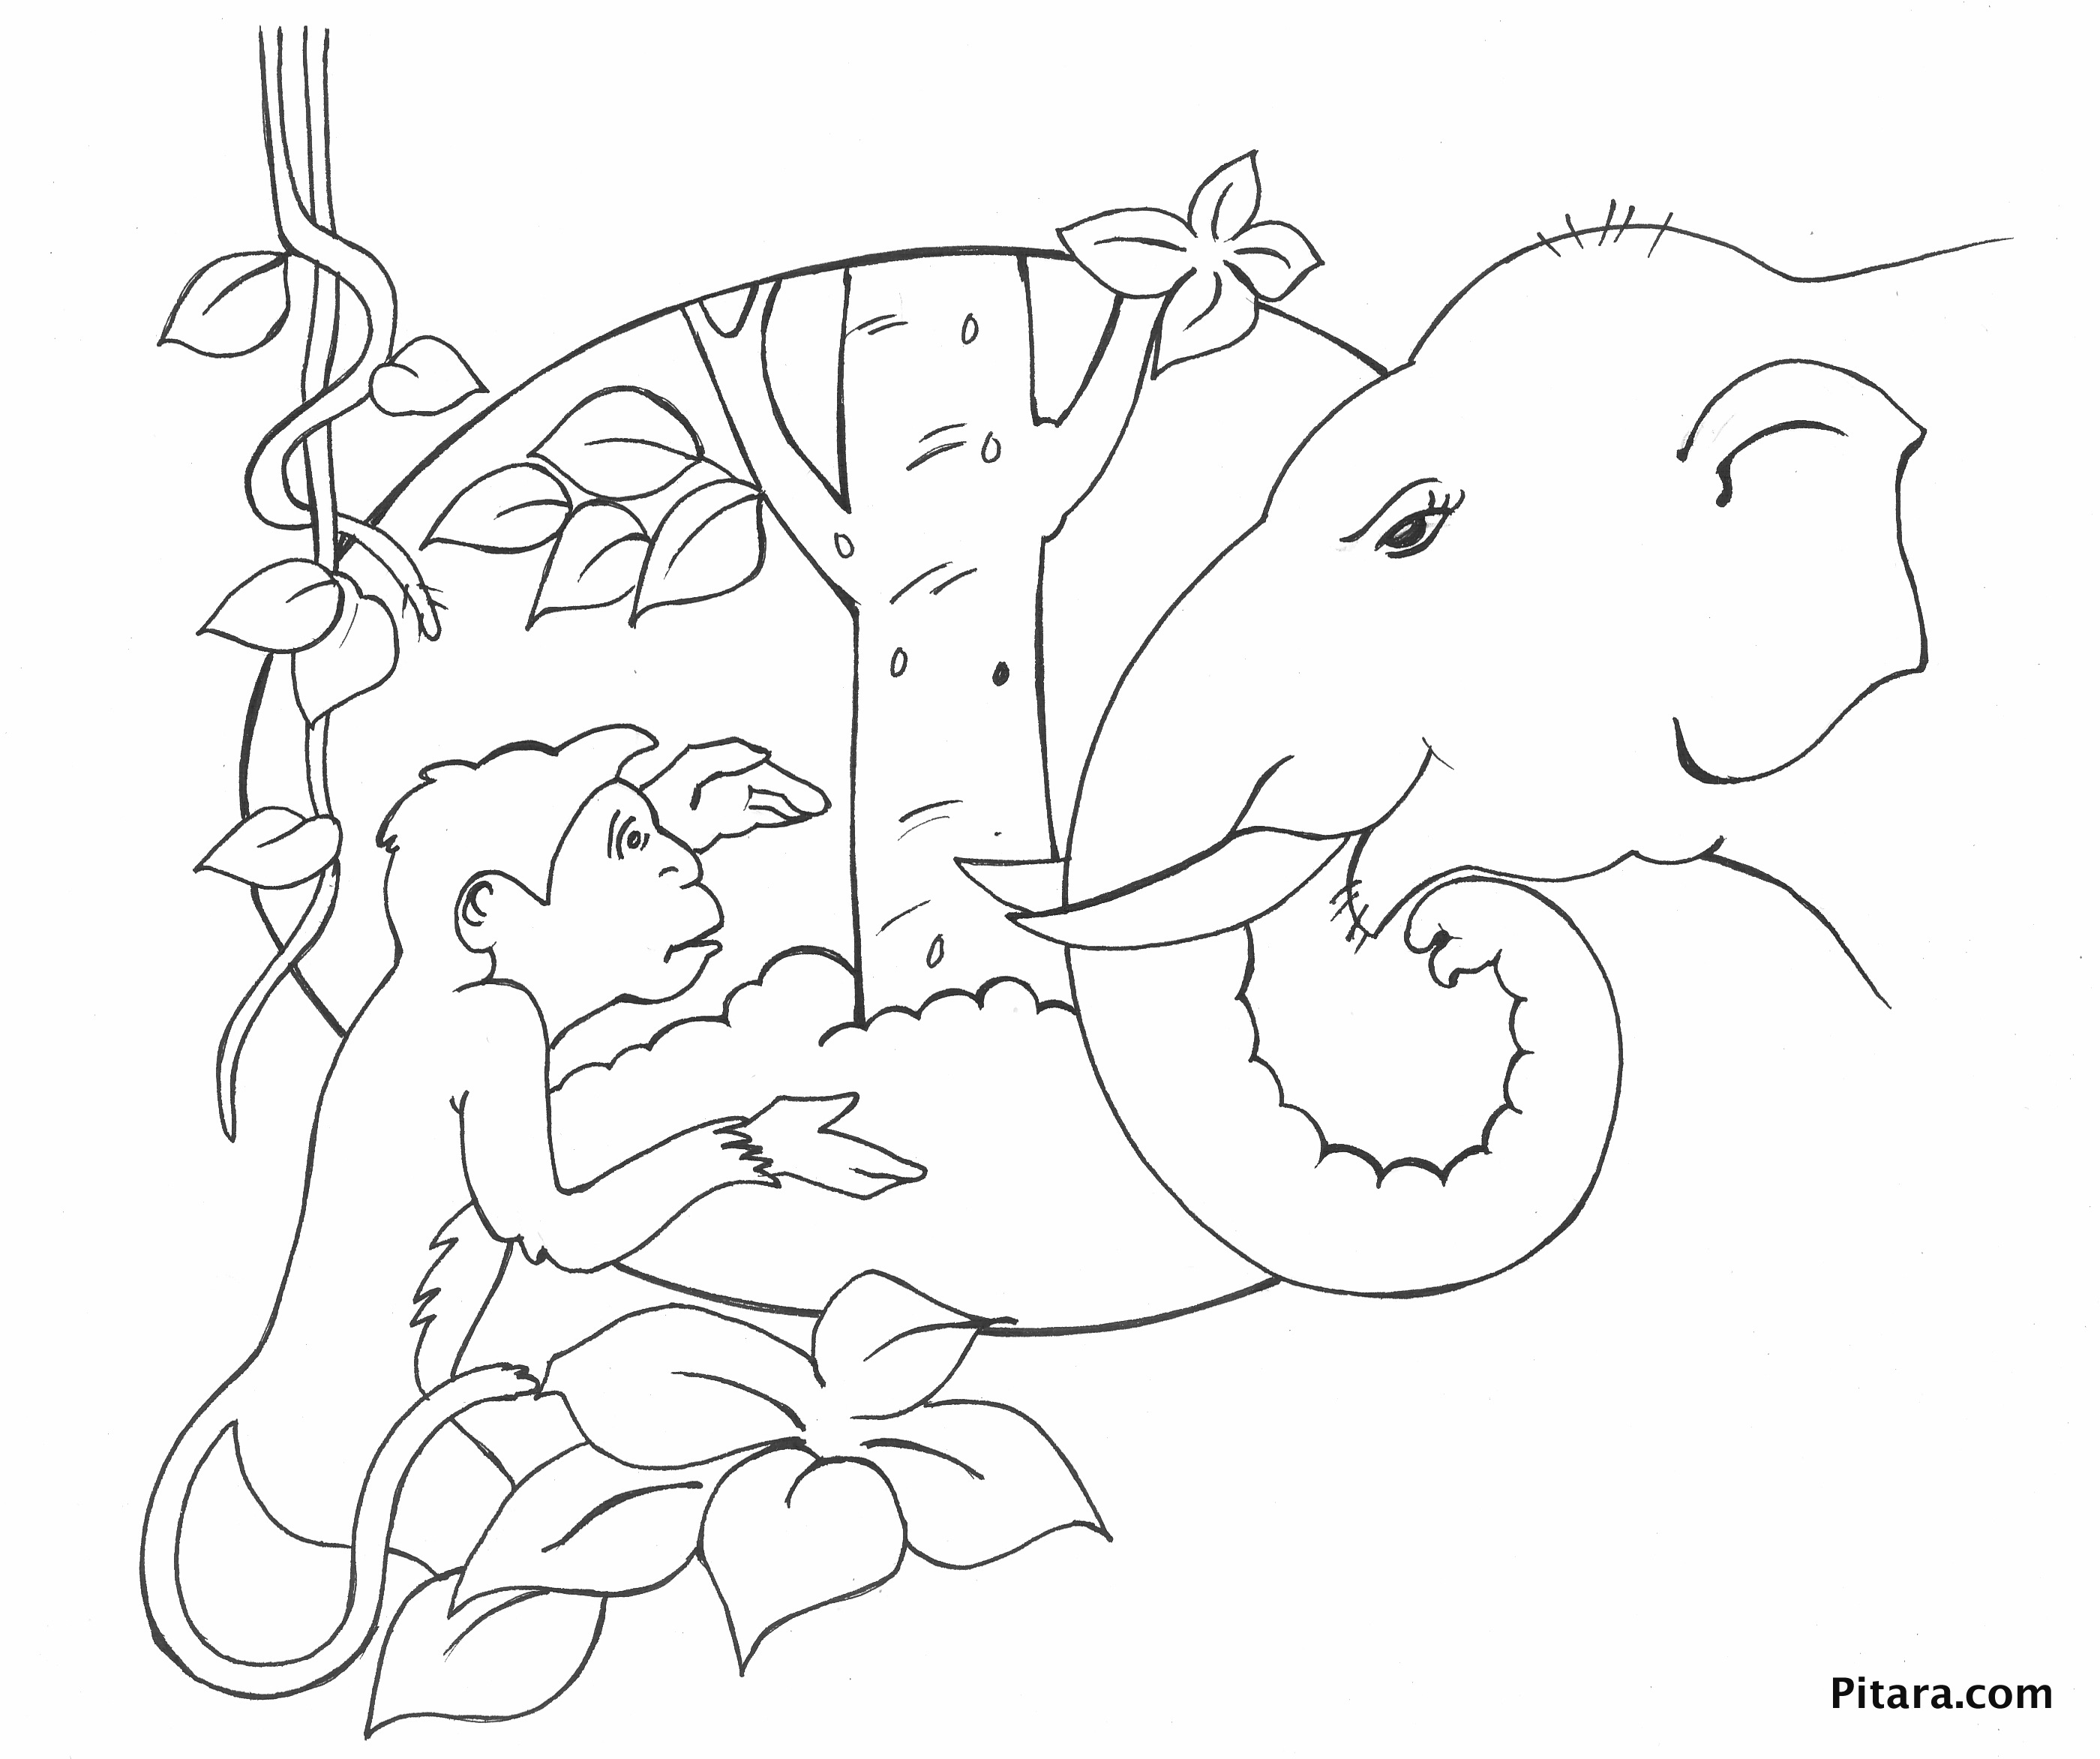 monkey u0026 elephant u2013 coloring page pitara kids network